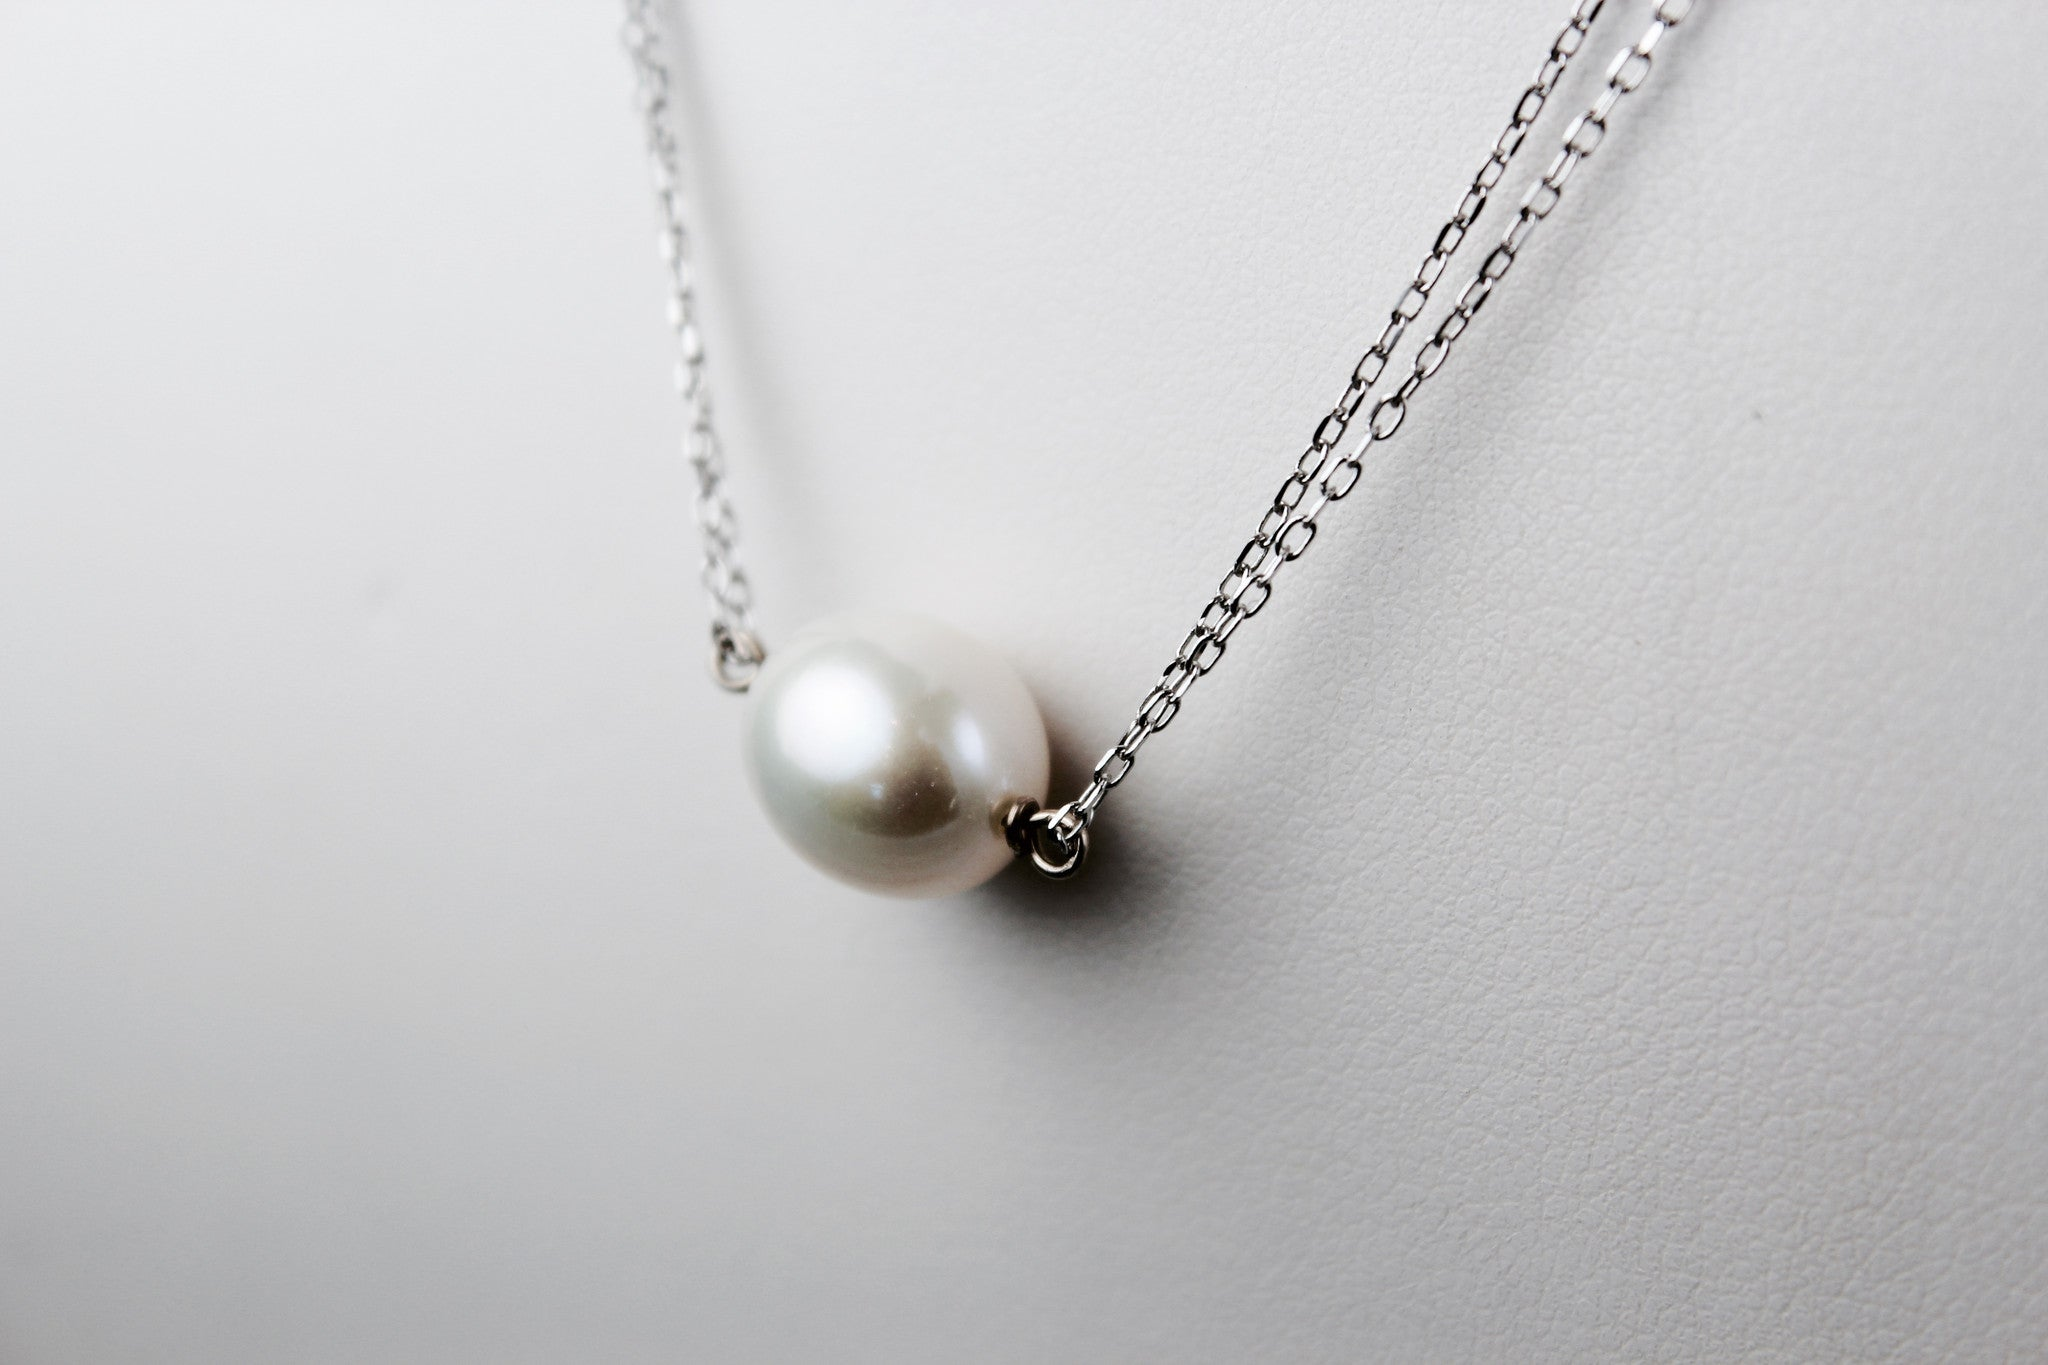 false necklace mizuki product white shop upscale crop scale baroque pearl single pearls subsampling the choker jewellery editor